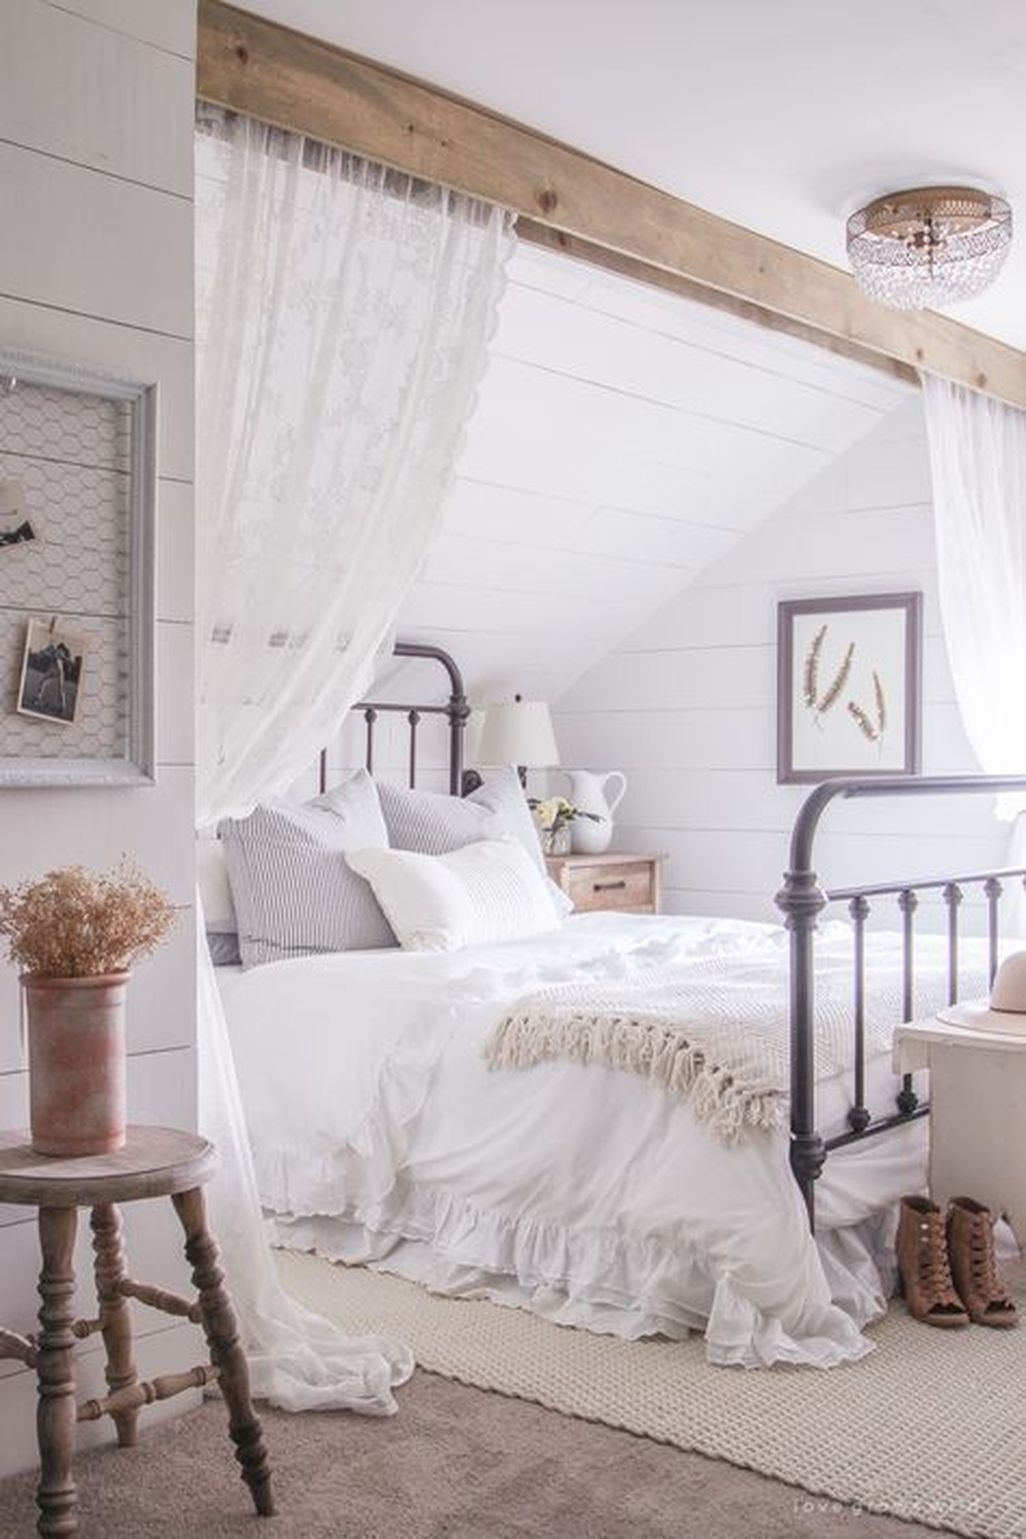 Awesome Rustic Farmhouse Bedroom Decoration Ideas 10